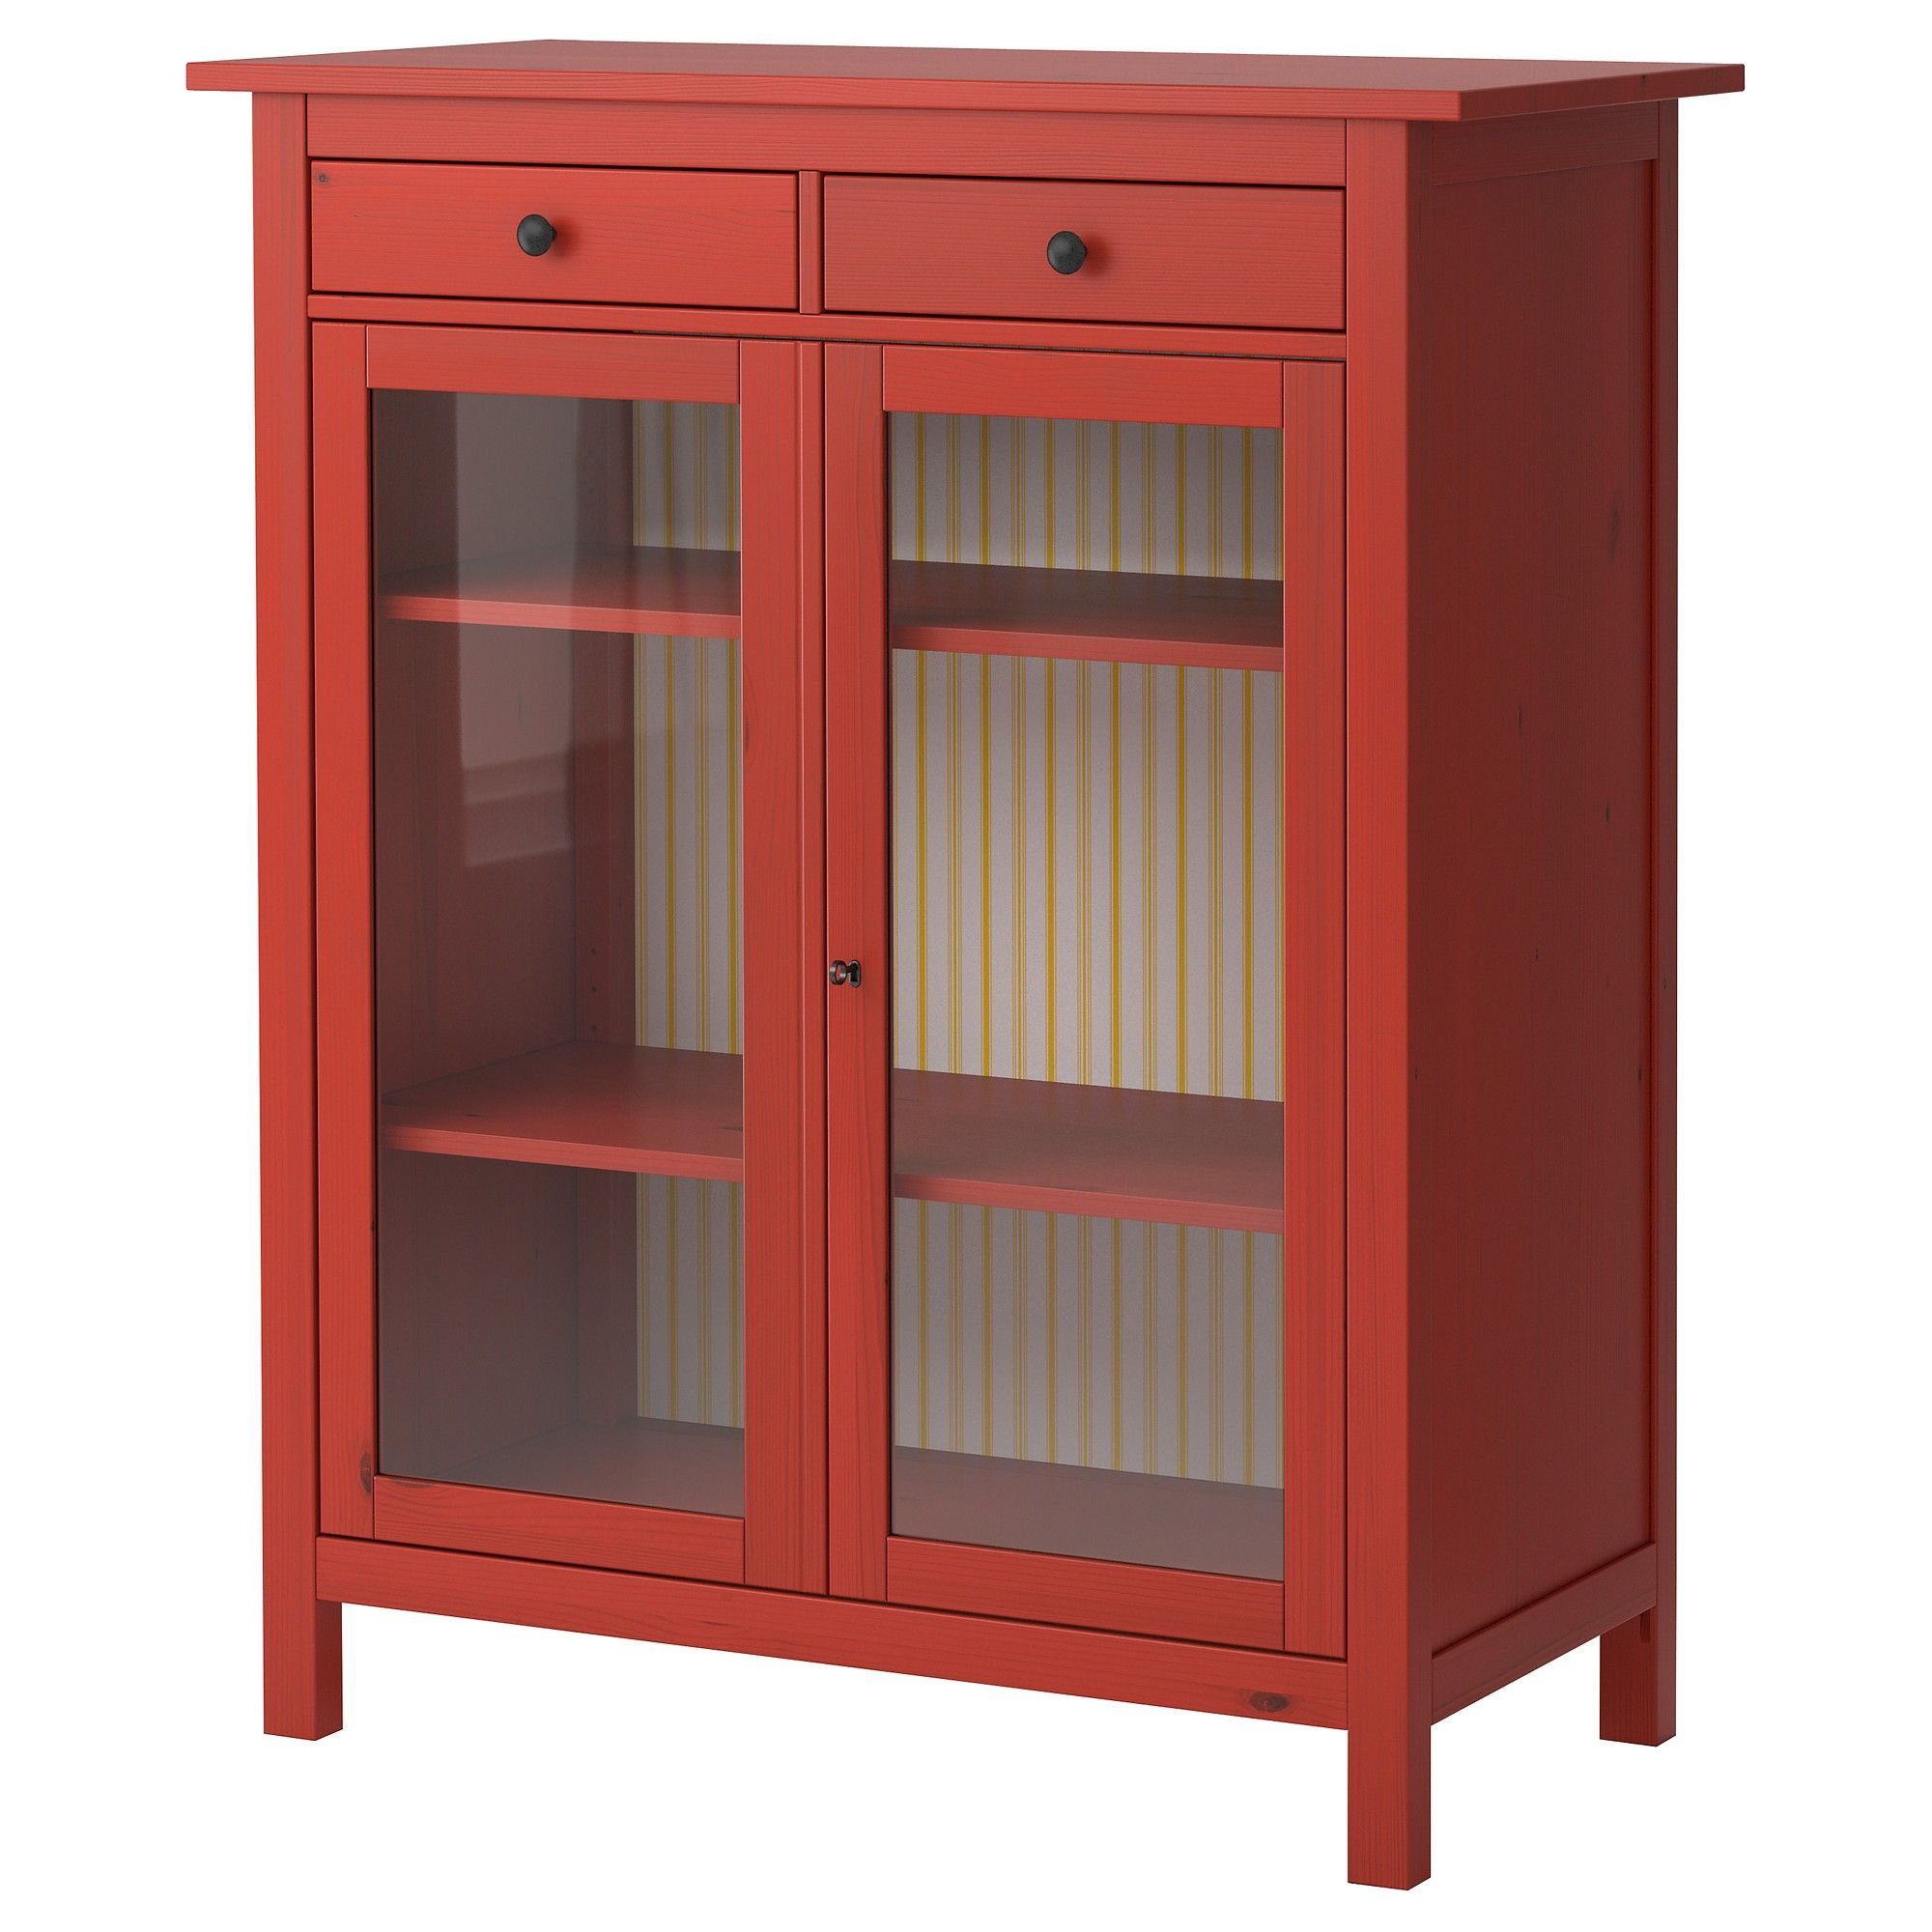 metal with locking inside sliding bookcase a furniture door glass free doors bookshelf for source book shelves having lock collections dust tier white brushed